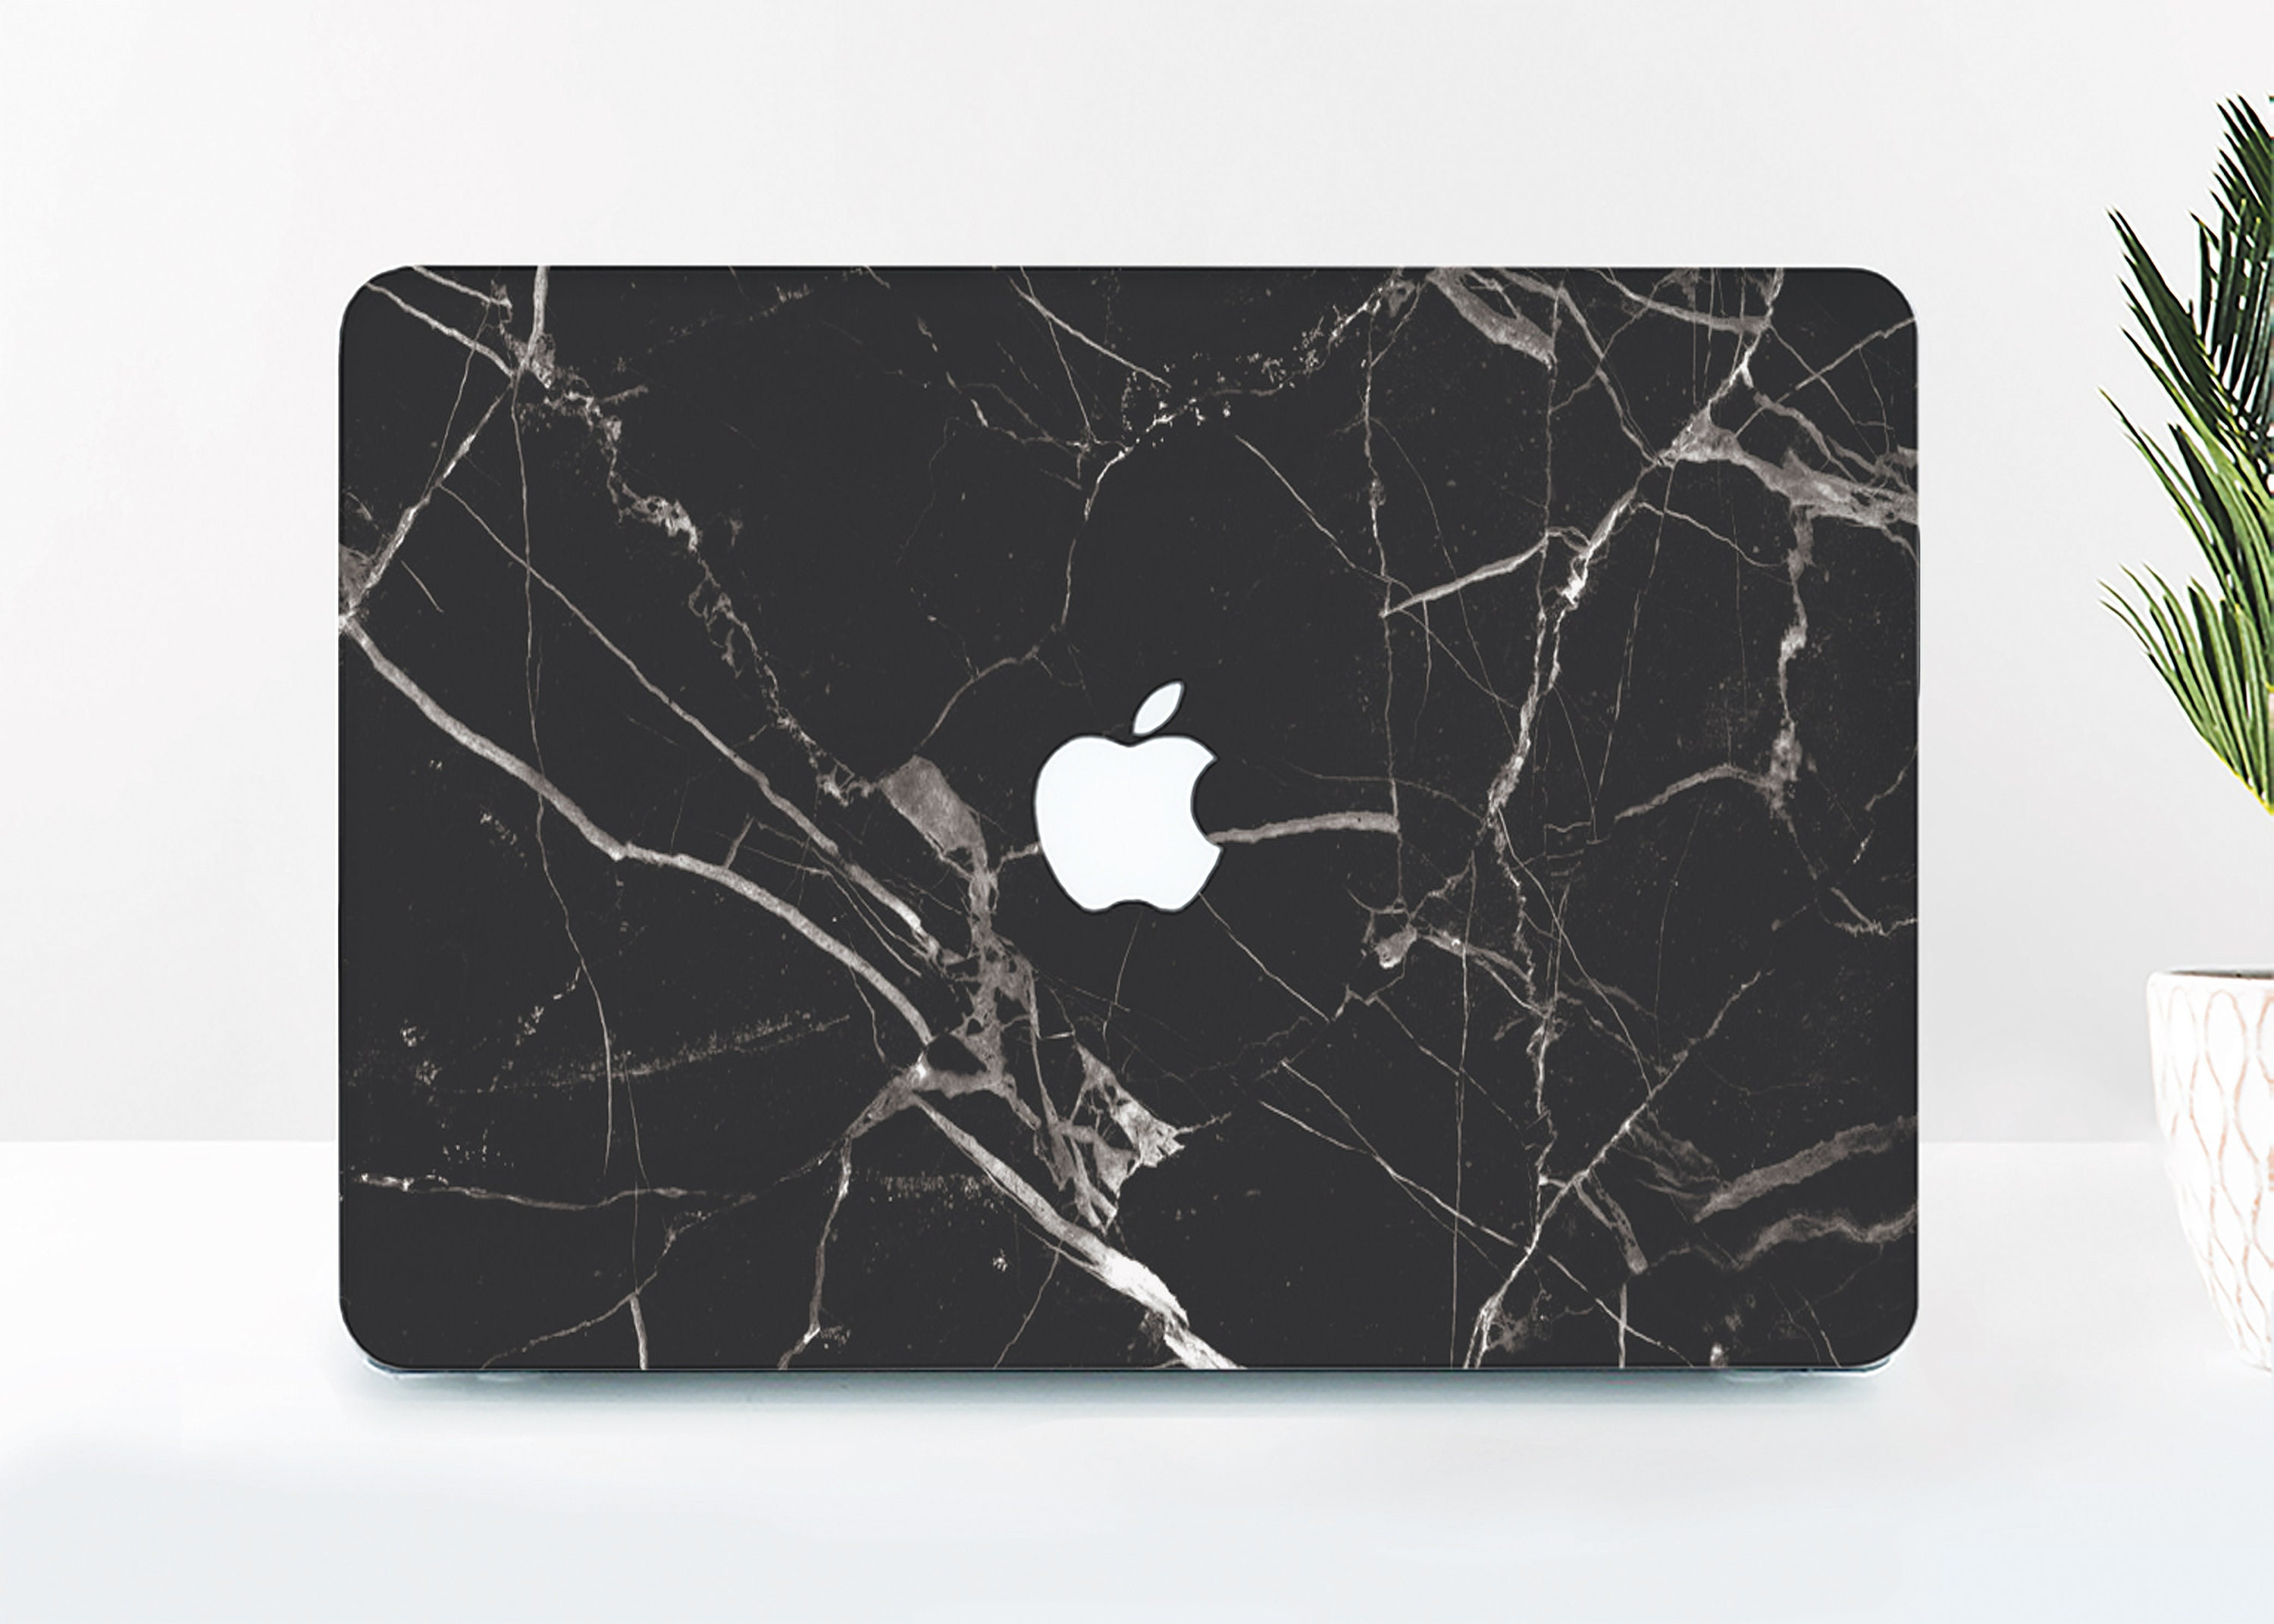 the latest 35d1d 640c8 Black Marble Macbook Air 13 Case Natural Stone Macbook Pro Retina 15 Hard  Case Macbook 12 Case Laptop Apple Case Apple Macbook Air 11 BD2037